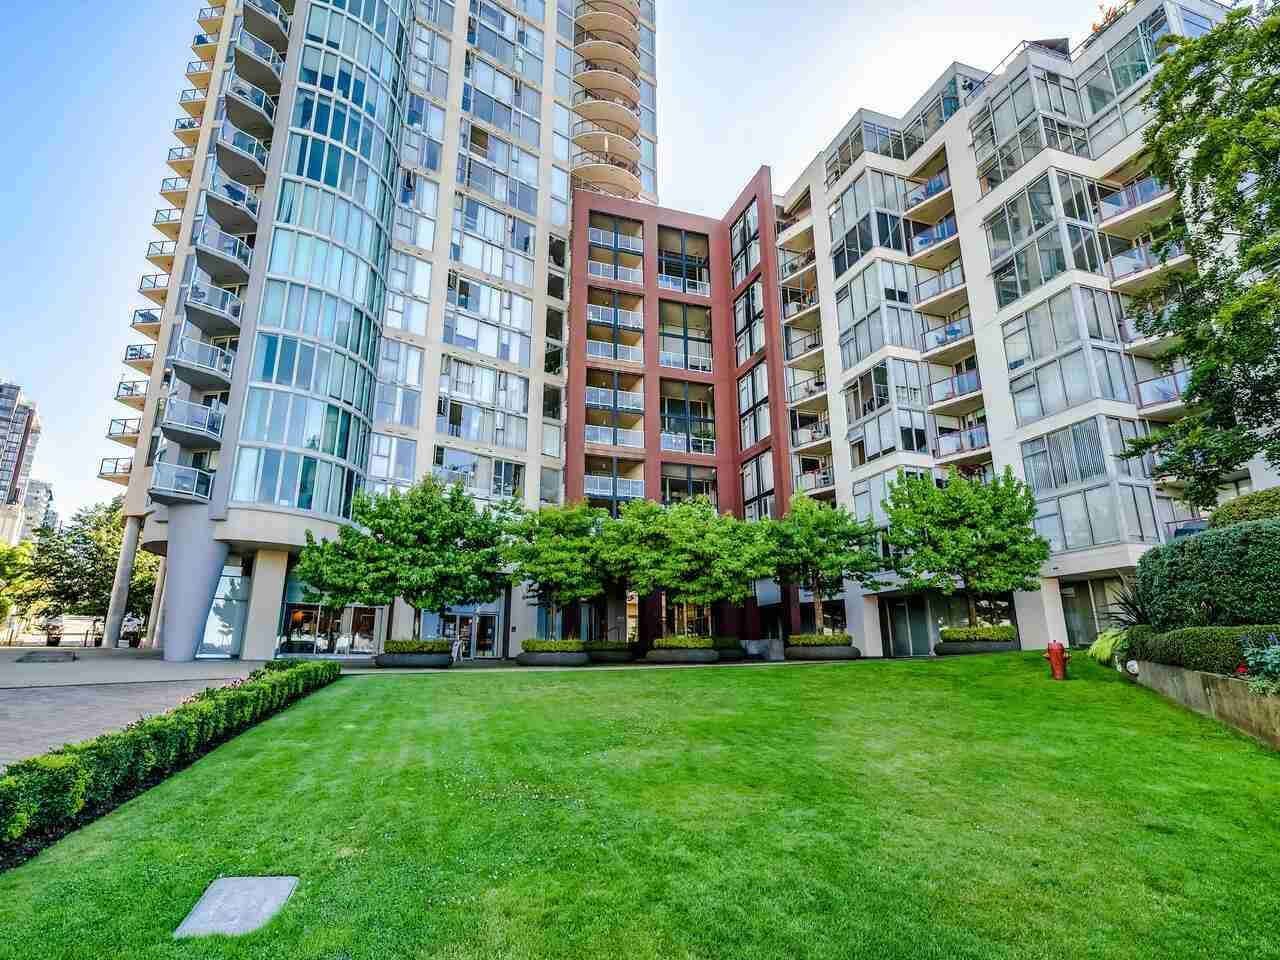 """Main Photo: 902 1000 BEACH Avenue in Vancouver: Yaletown Condo for sale in """"1000 BEACH"""" (Vancouver West)  : MLS®# R2506379"""